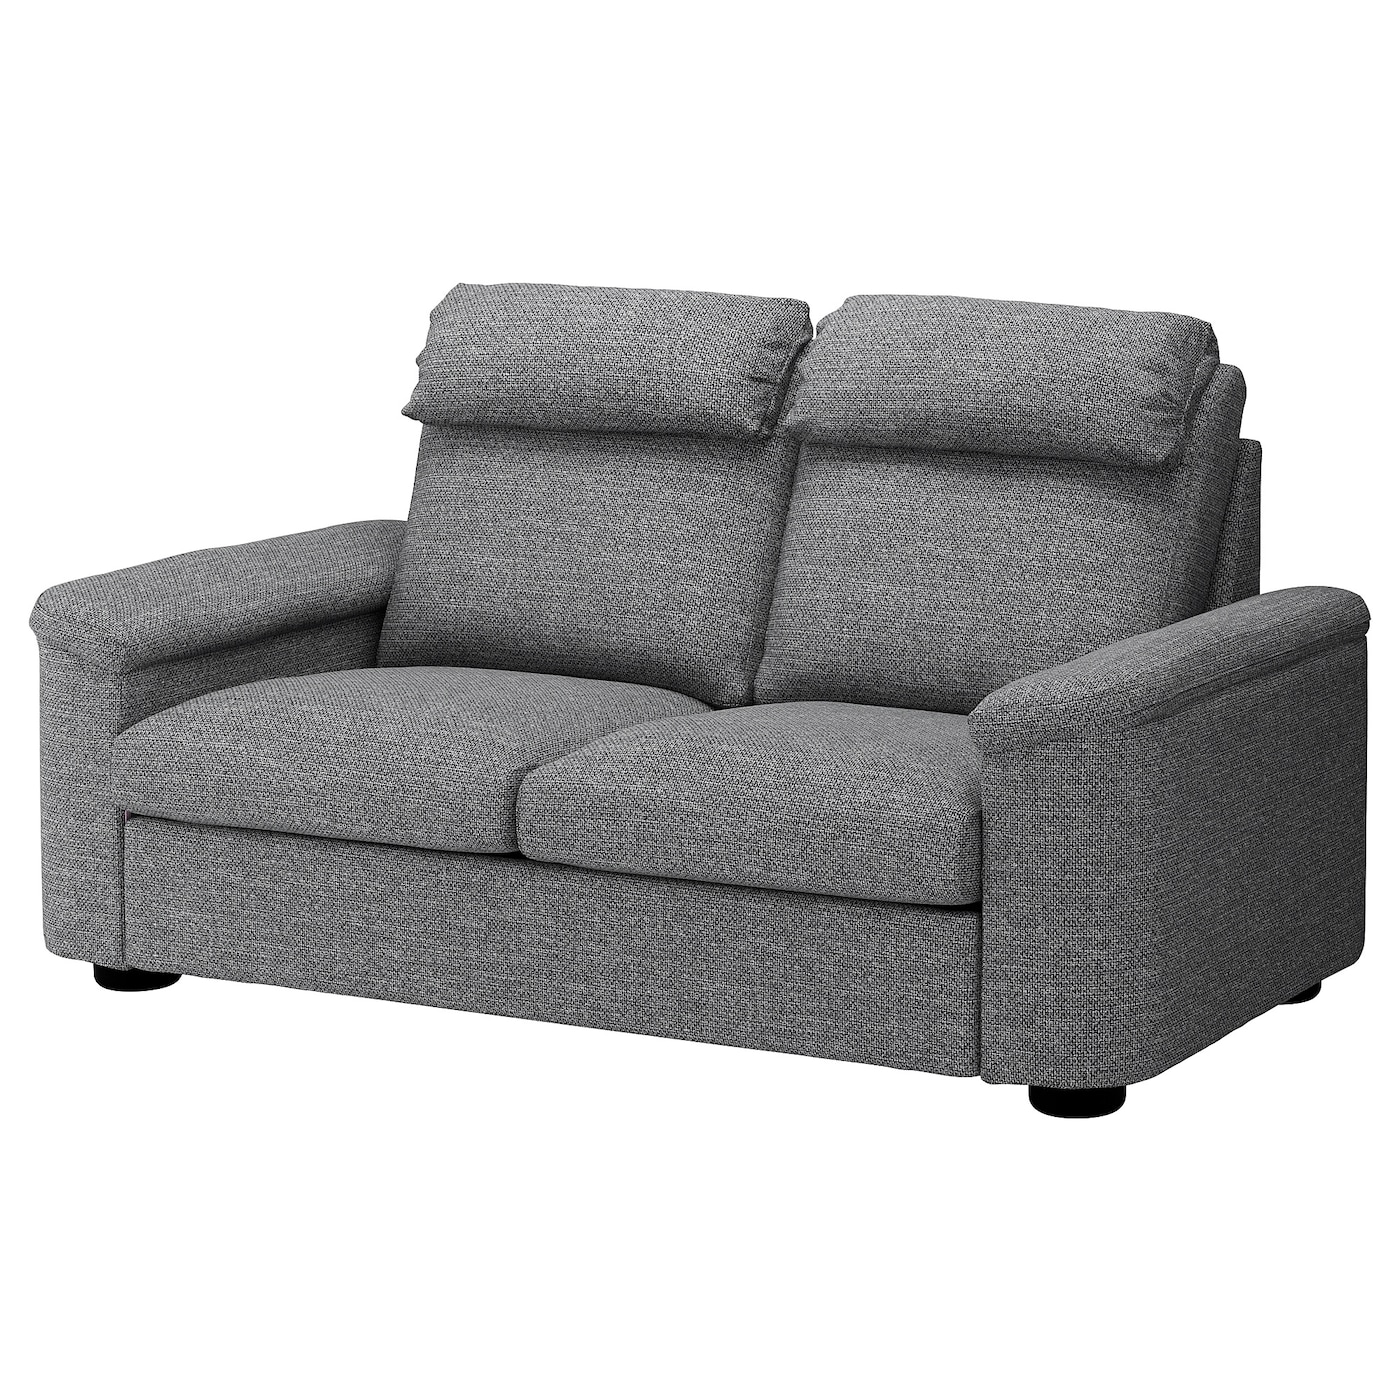 Lidhult 2 Seat Sofa Bed Lejde Grey